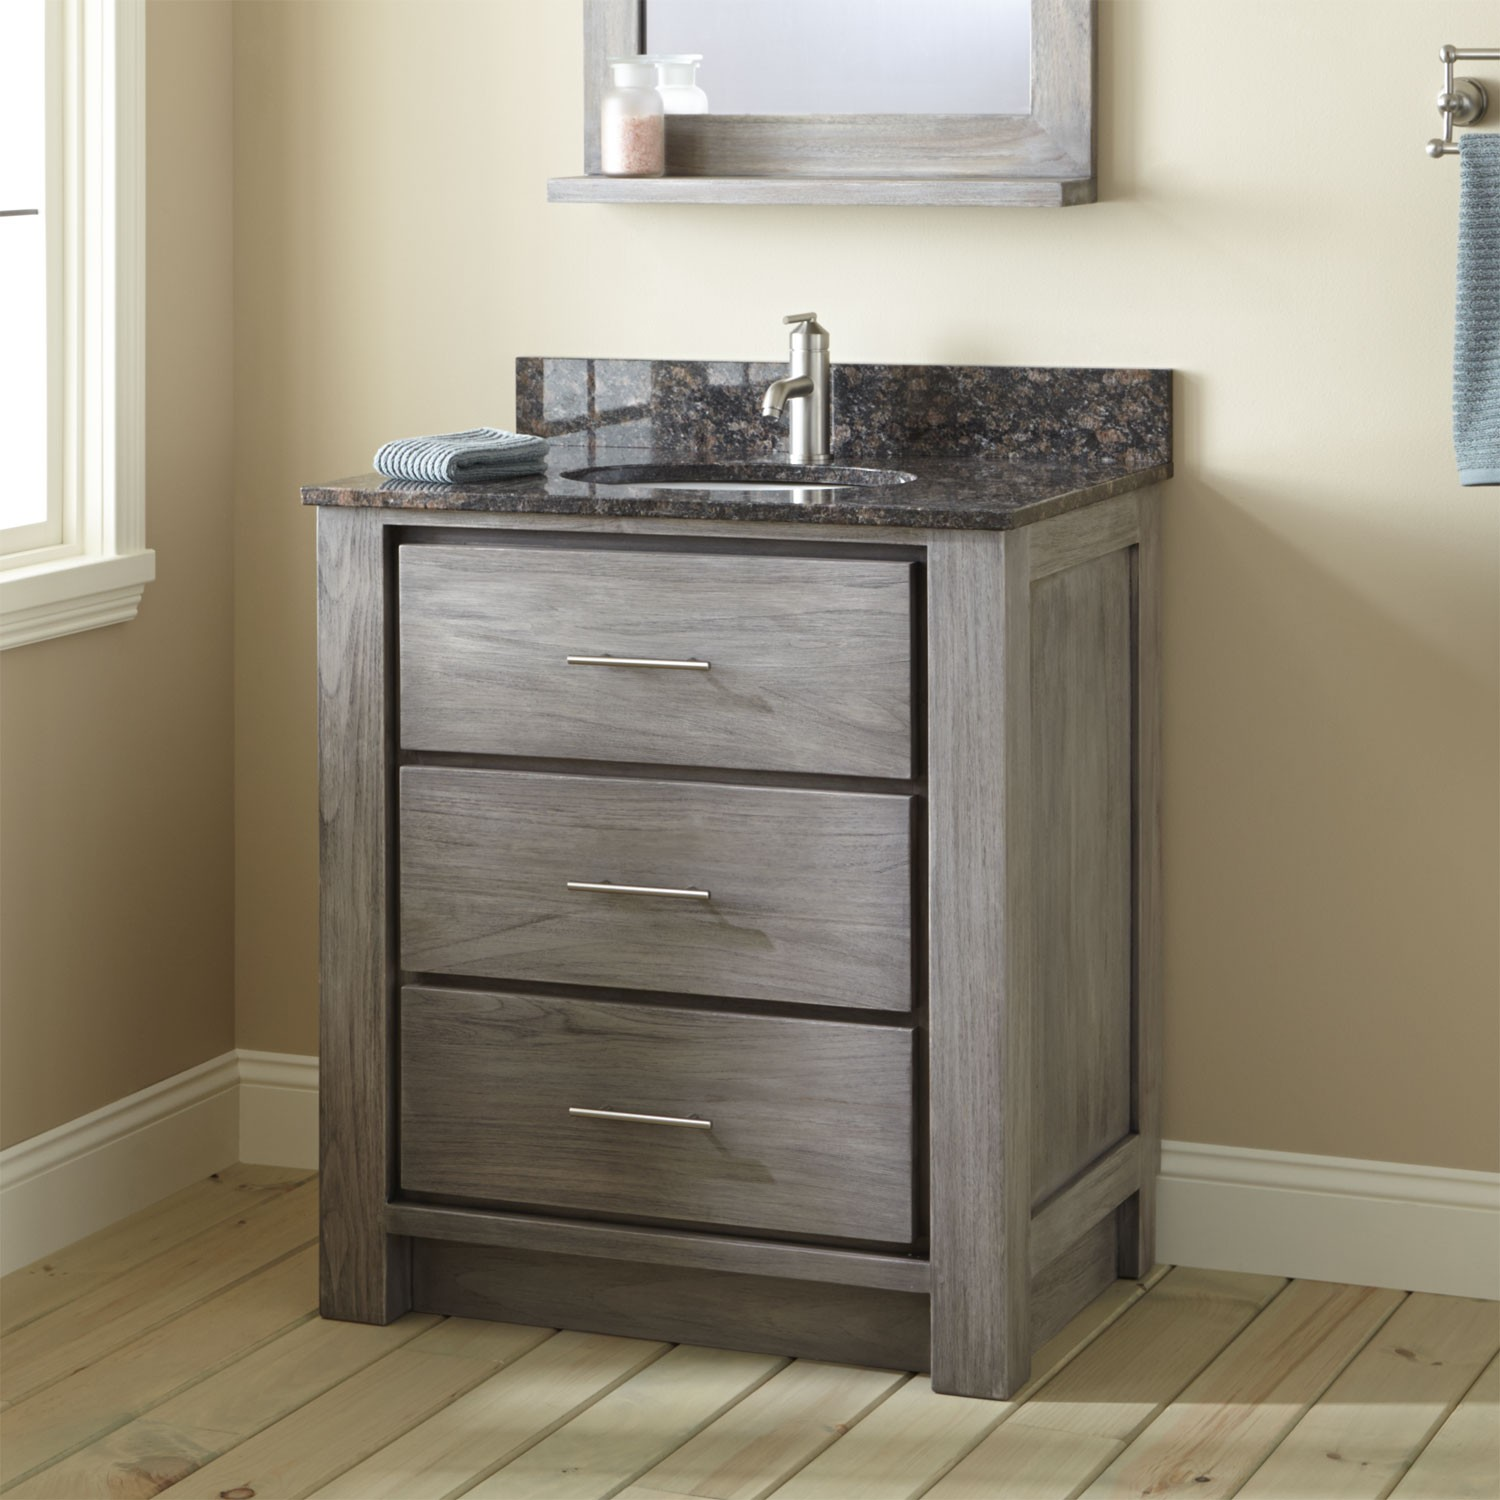 home vanity black today drawers overstock garden marble shipping bath inch with bathroom free set product and door quartz drawer top two bottom doors wyndenhall windham white